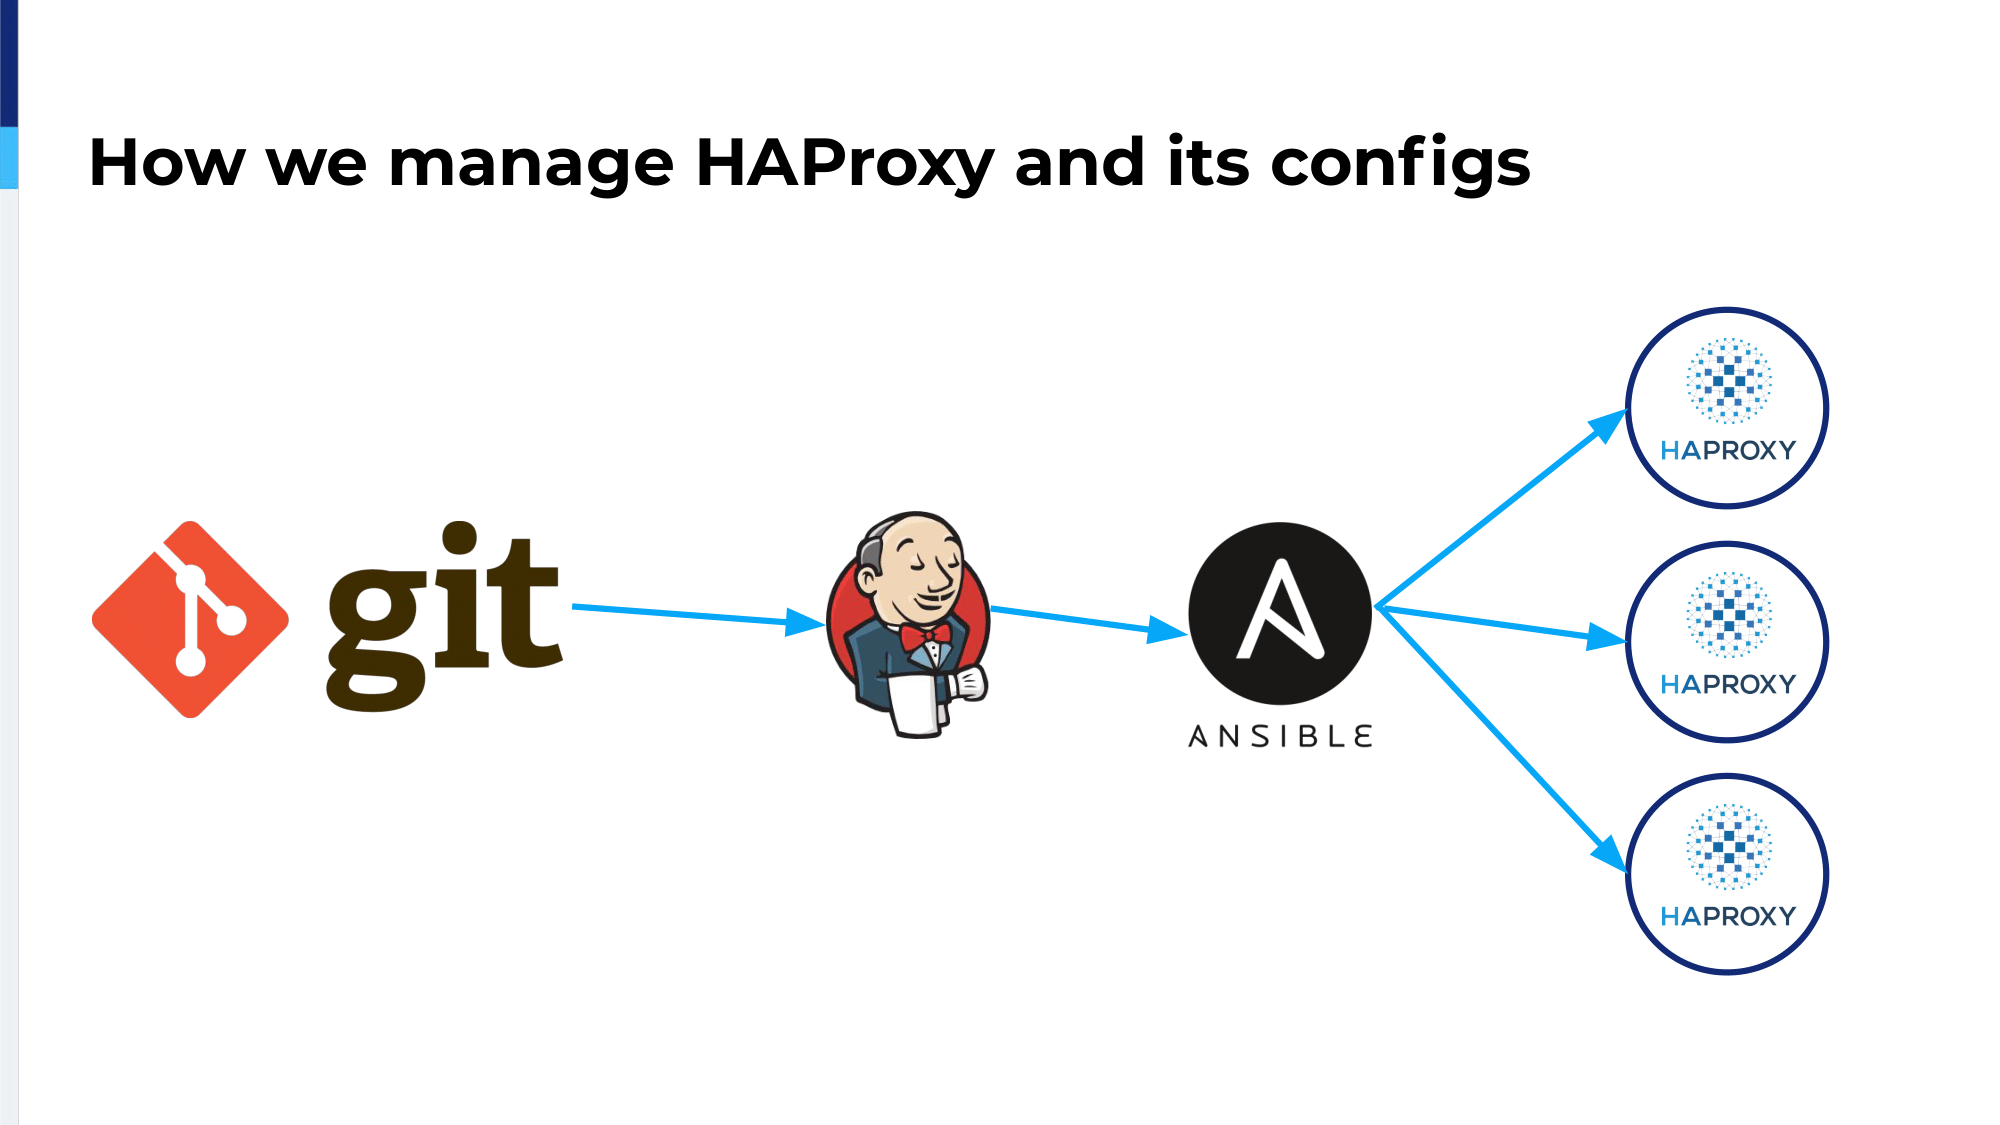 haproxyconf2019_ migrating thredup infrastructure to kubernetes with haproxy_oleksii asiutin_21